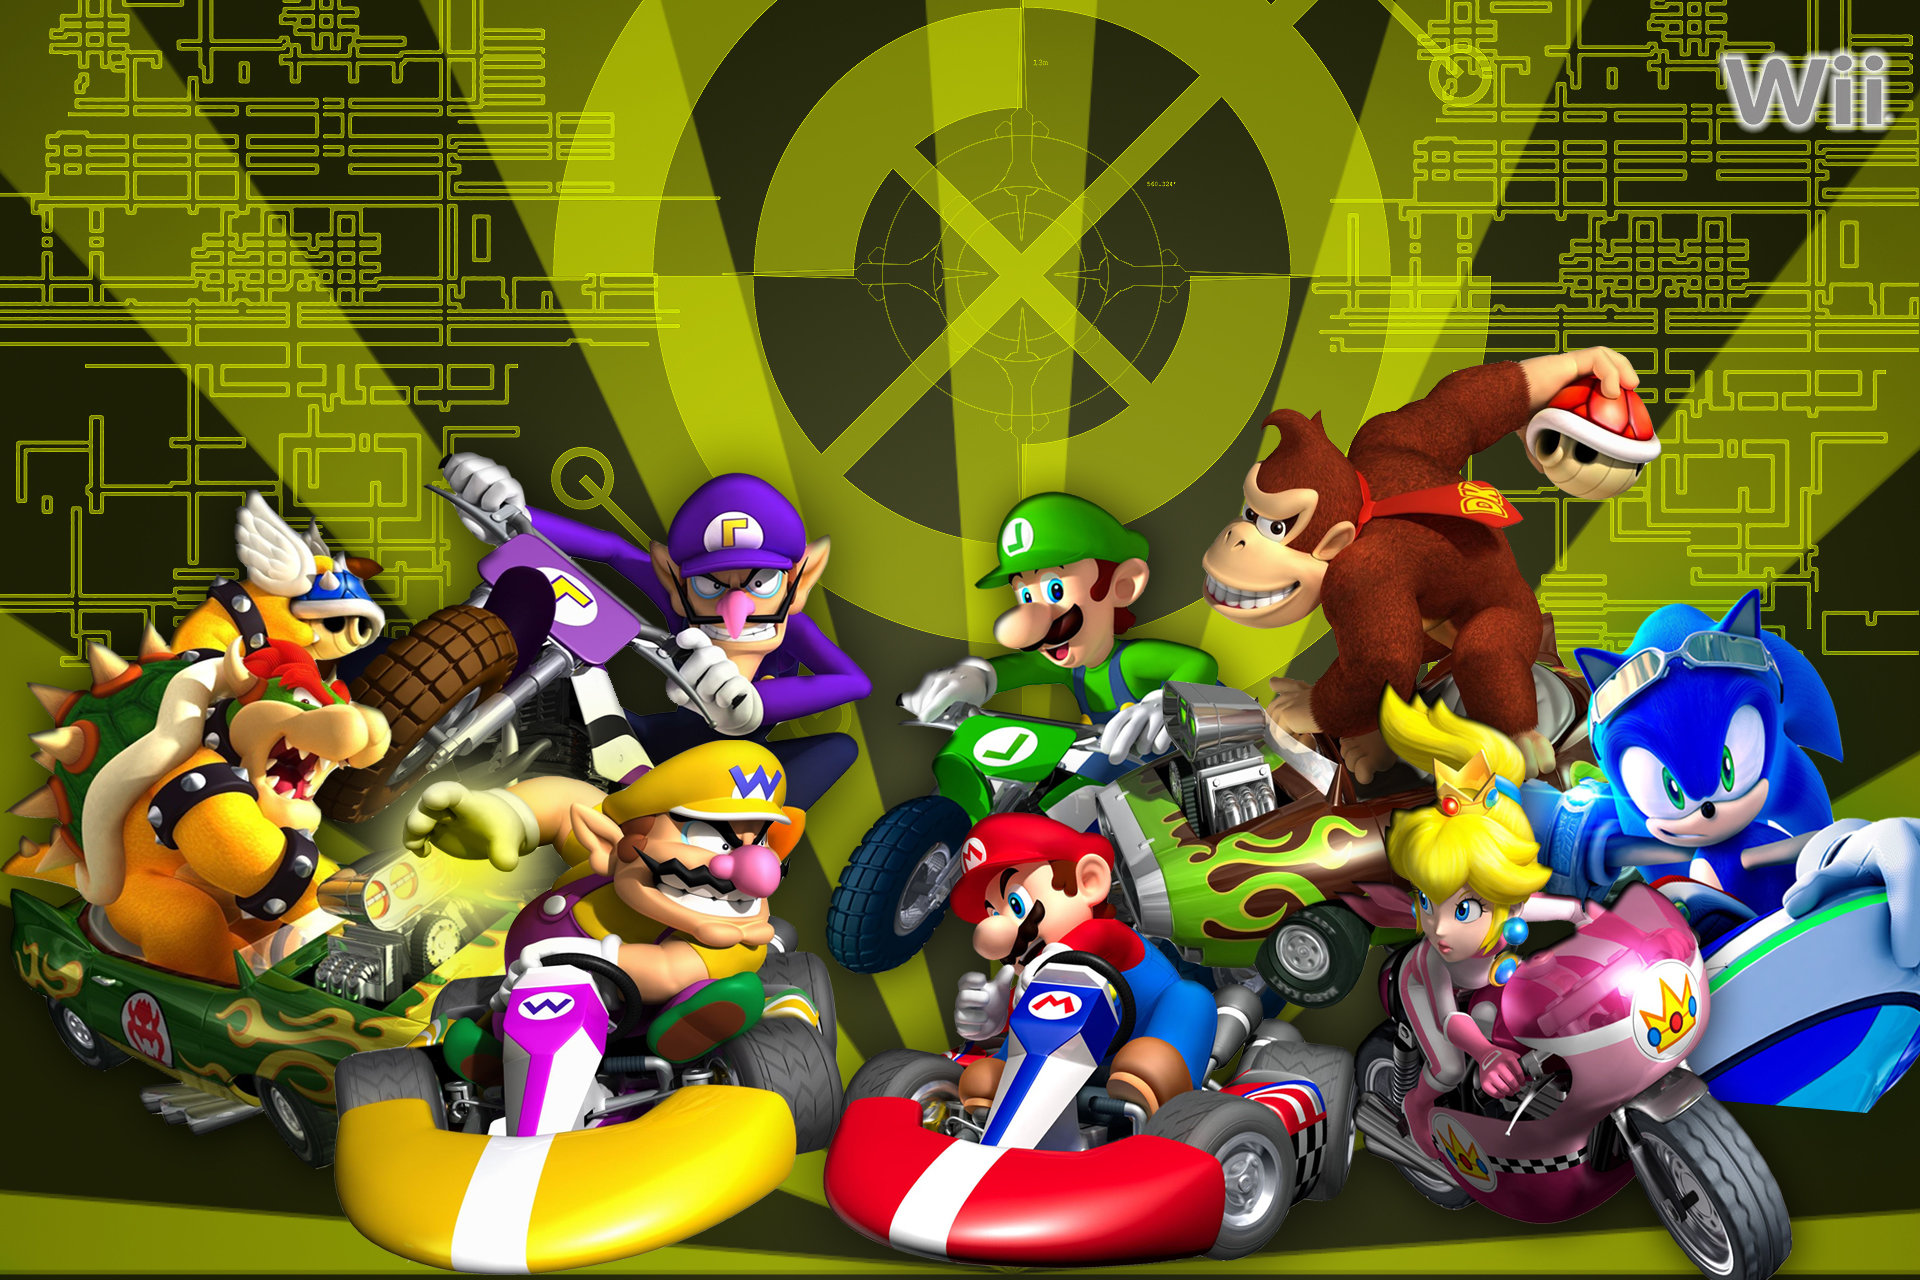 Awesome Mario Kart Wii free wallpaper ID:324428 for hd 1920x1280 desktop